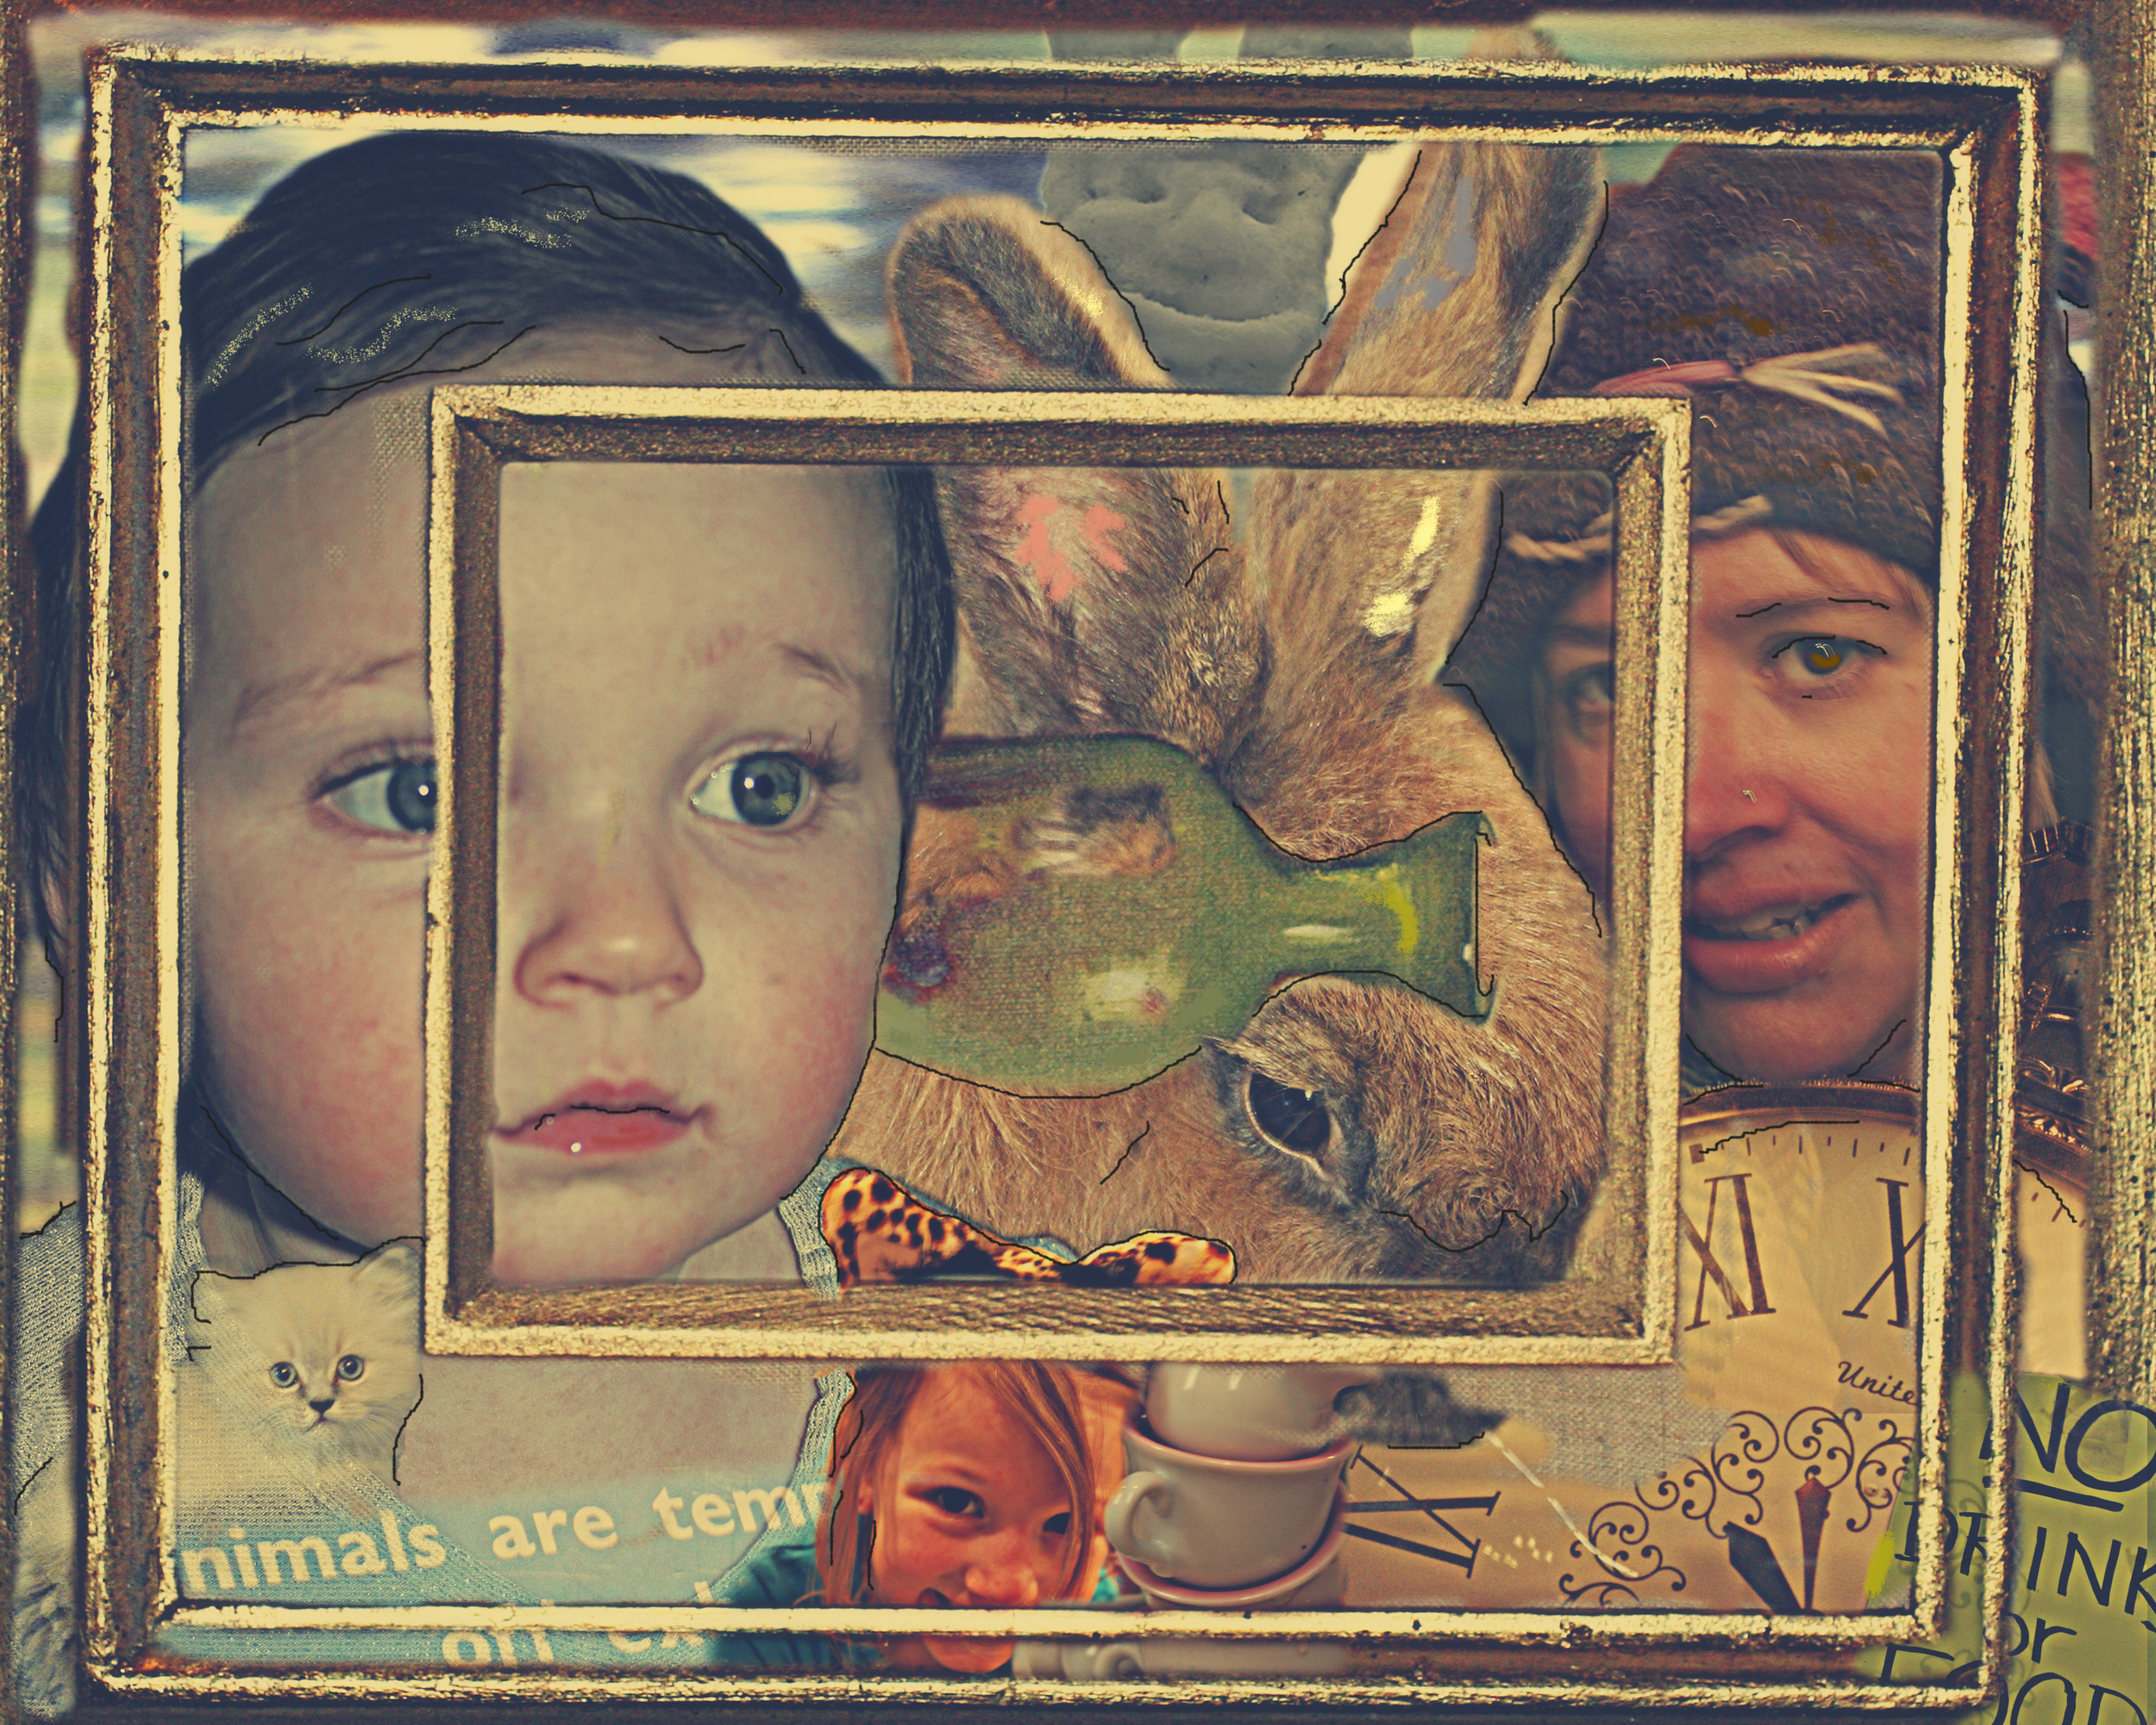 08 Collage Through the Looking Glass.jpg